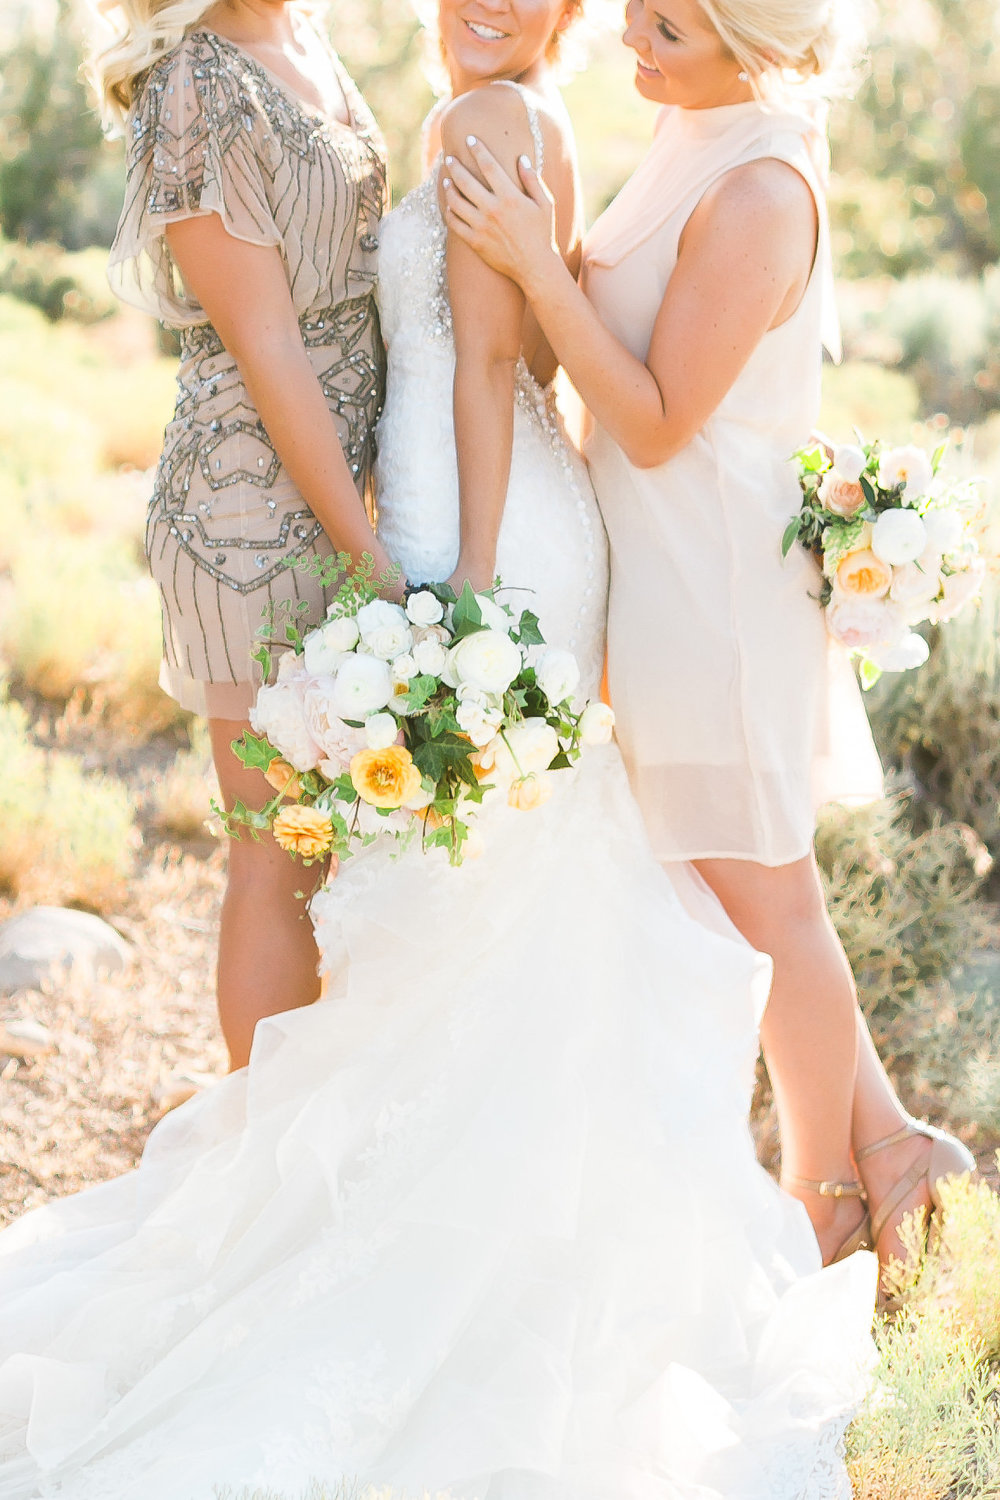 Glam rustic wedding bouquet and sequence bridesmaid dress.